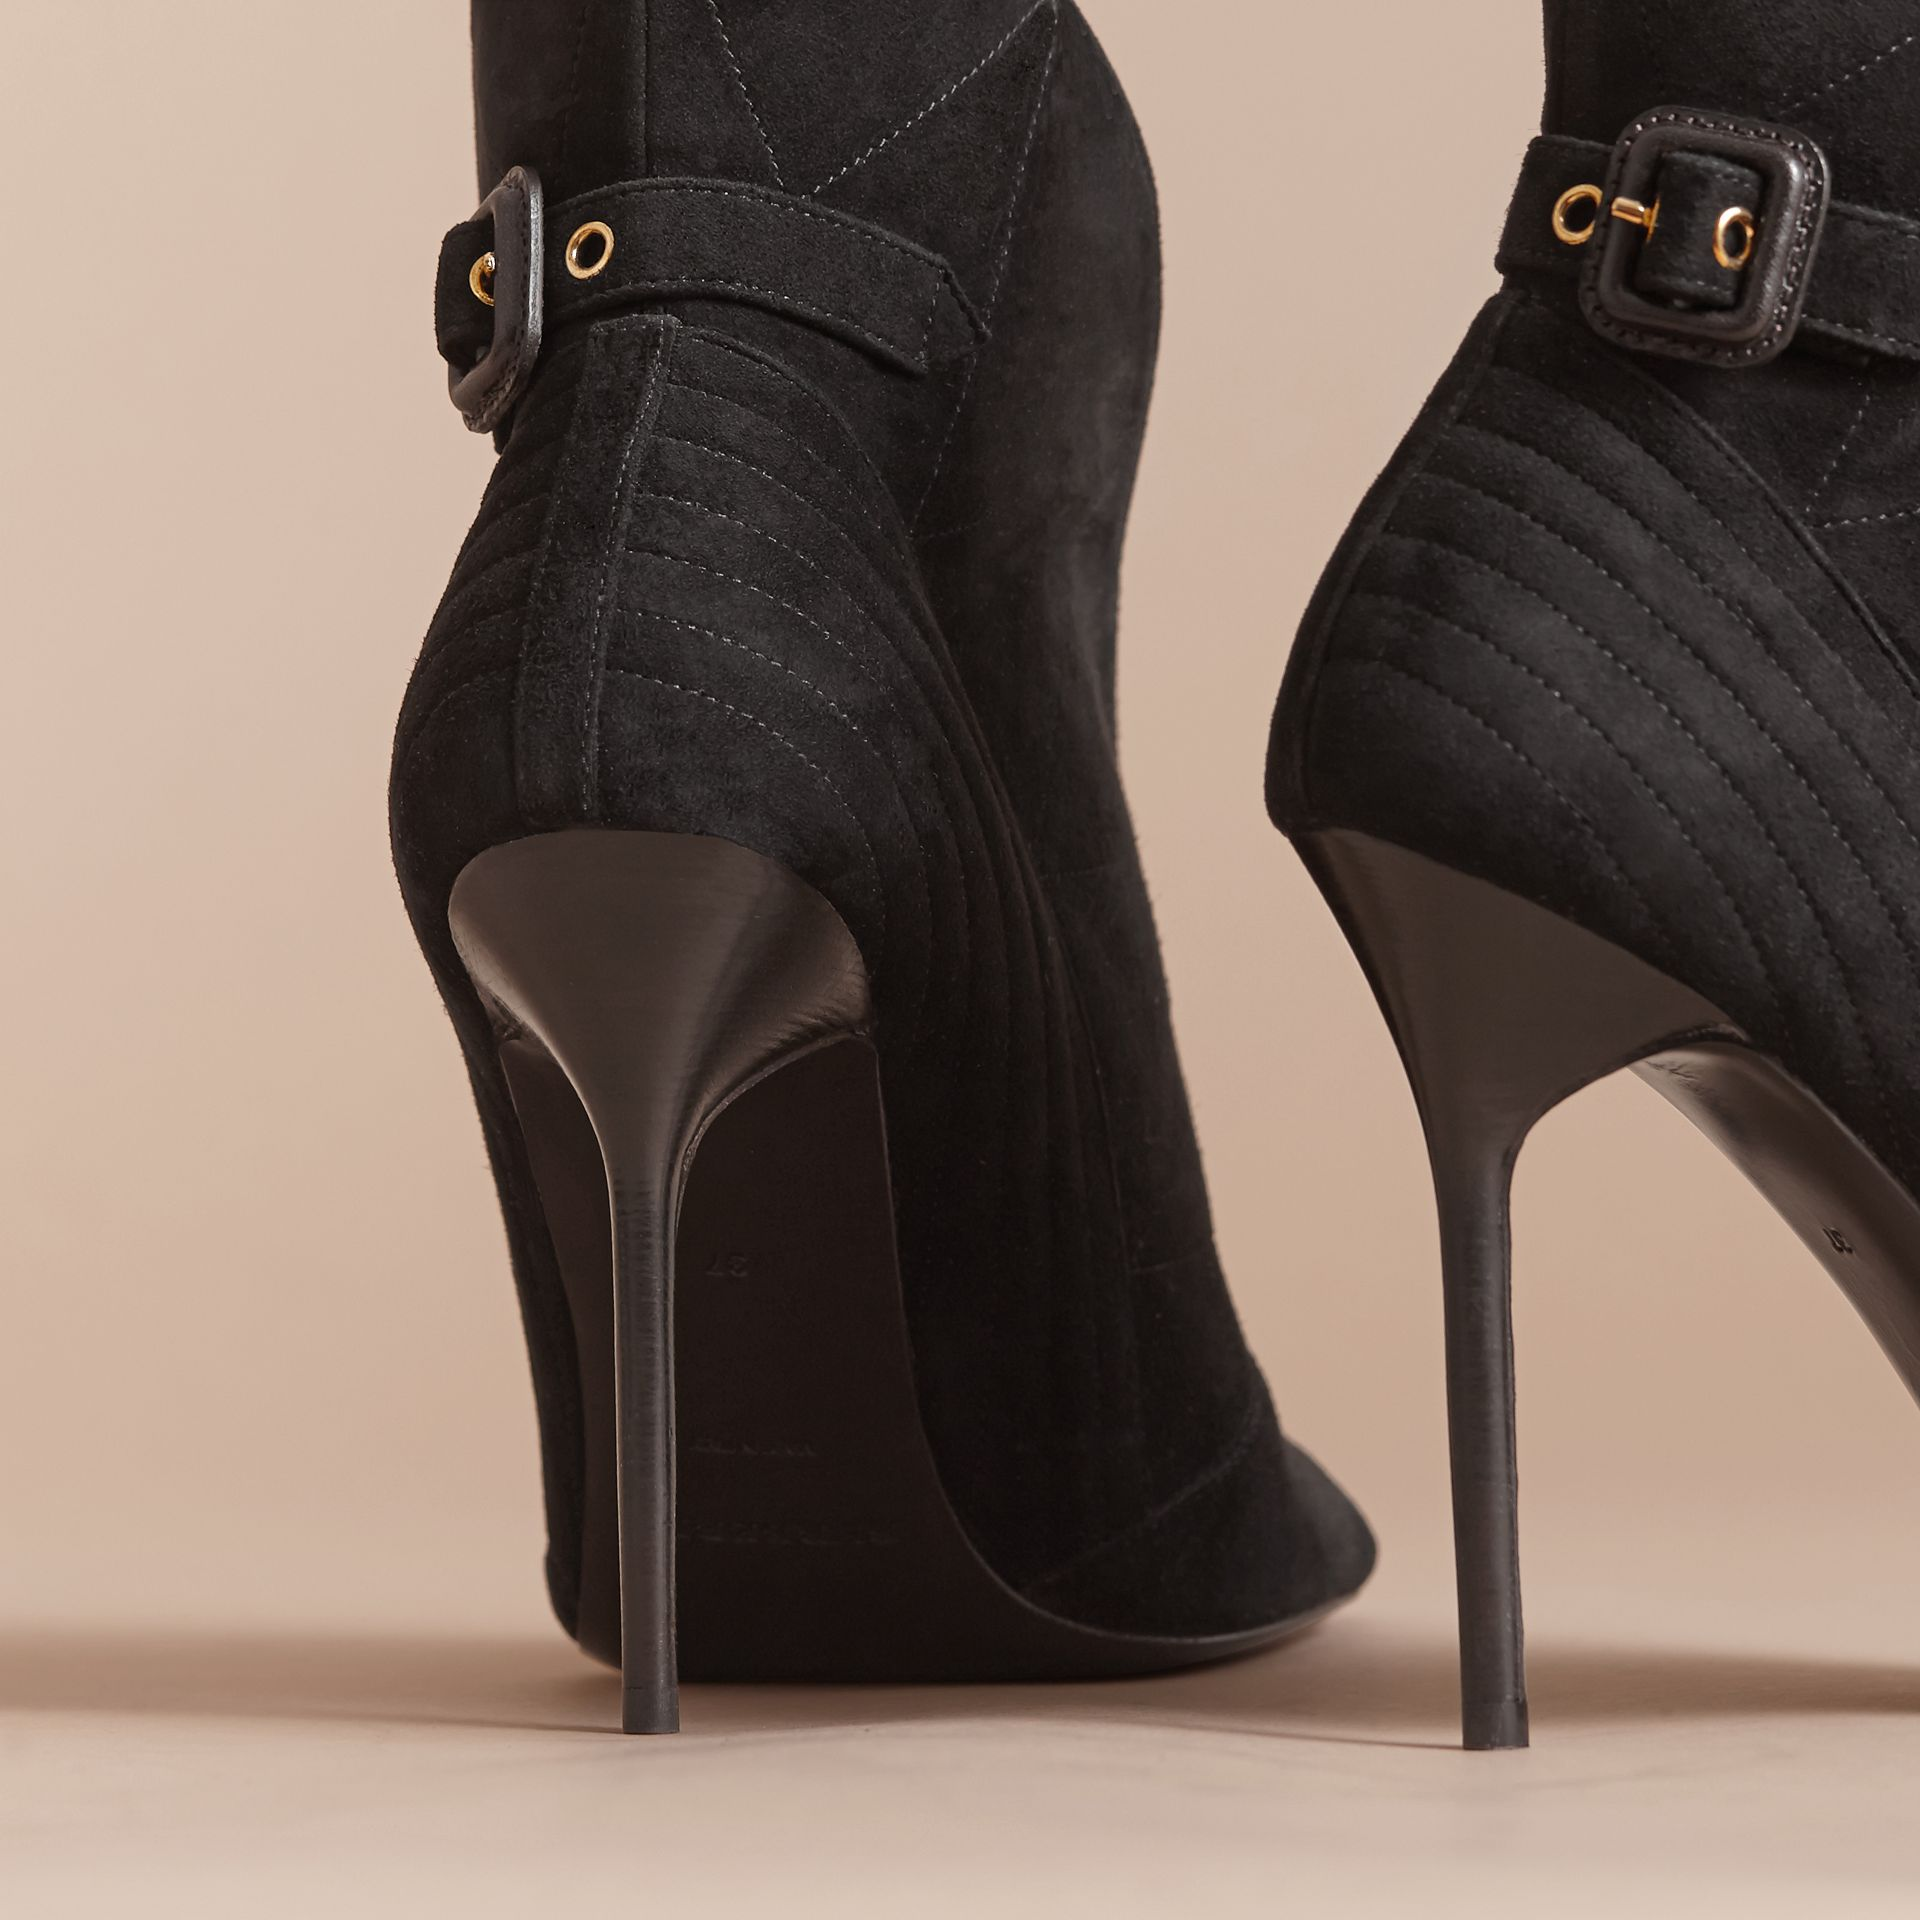 Buckle Detail Suede Peep-toe Ankle Boots in Black - Women | Burberry Canada - gallery image 4